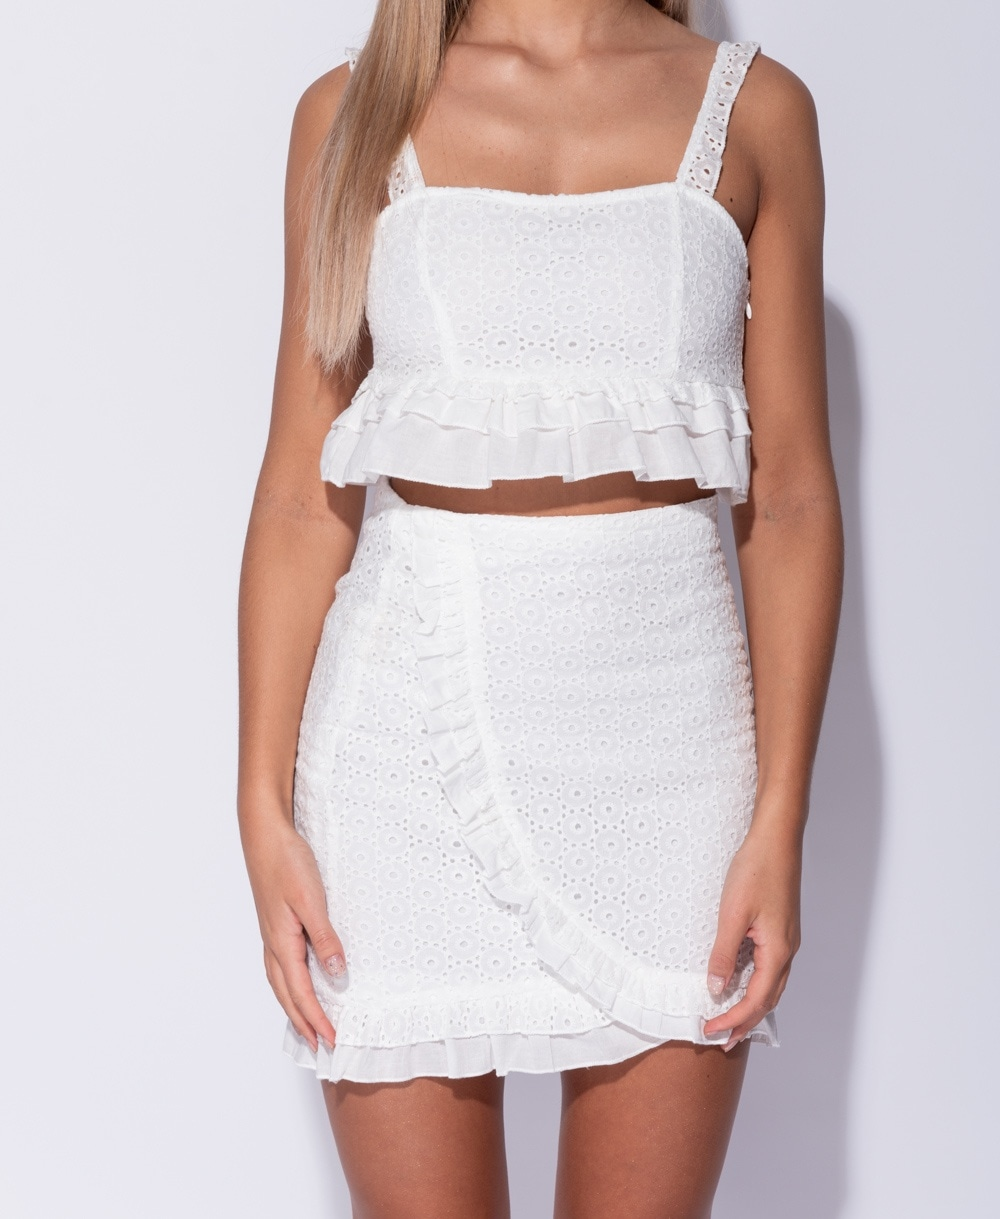 e033b2d6e3 Broderie Lace Frill Detail Crop Top & Frill Detail Mini Skirt Co Ord Set